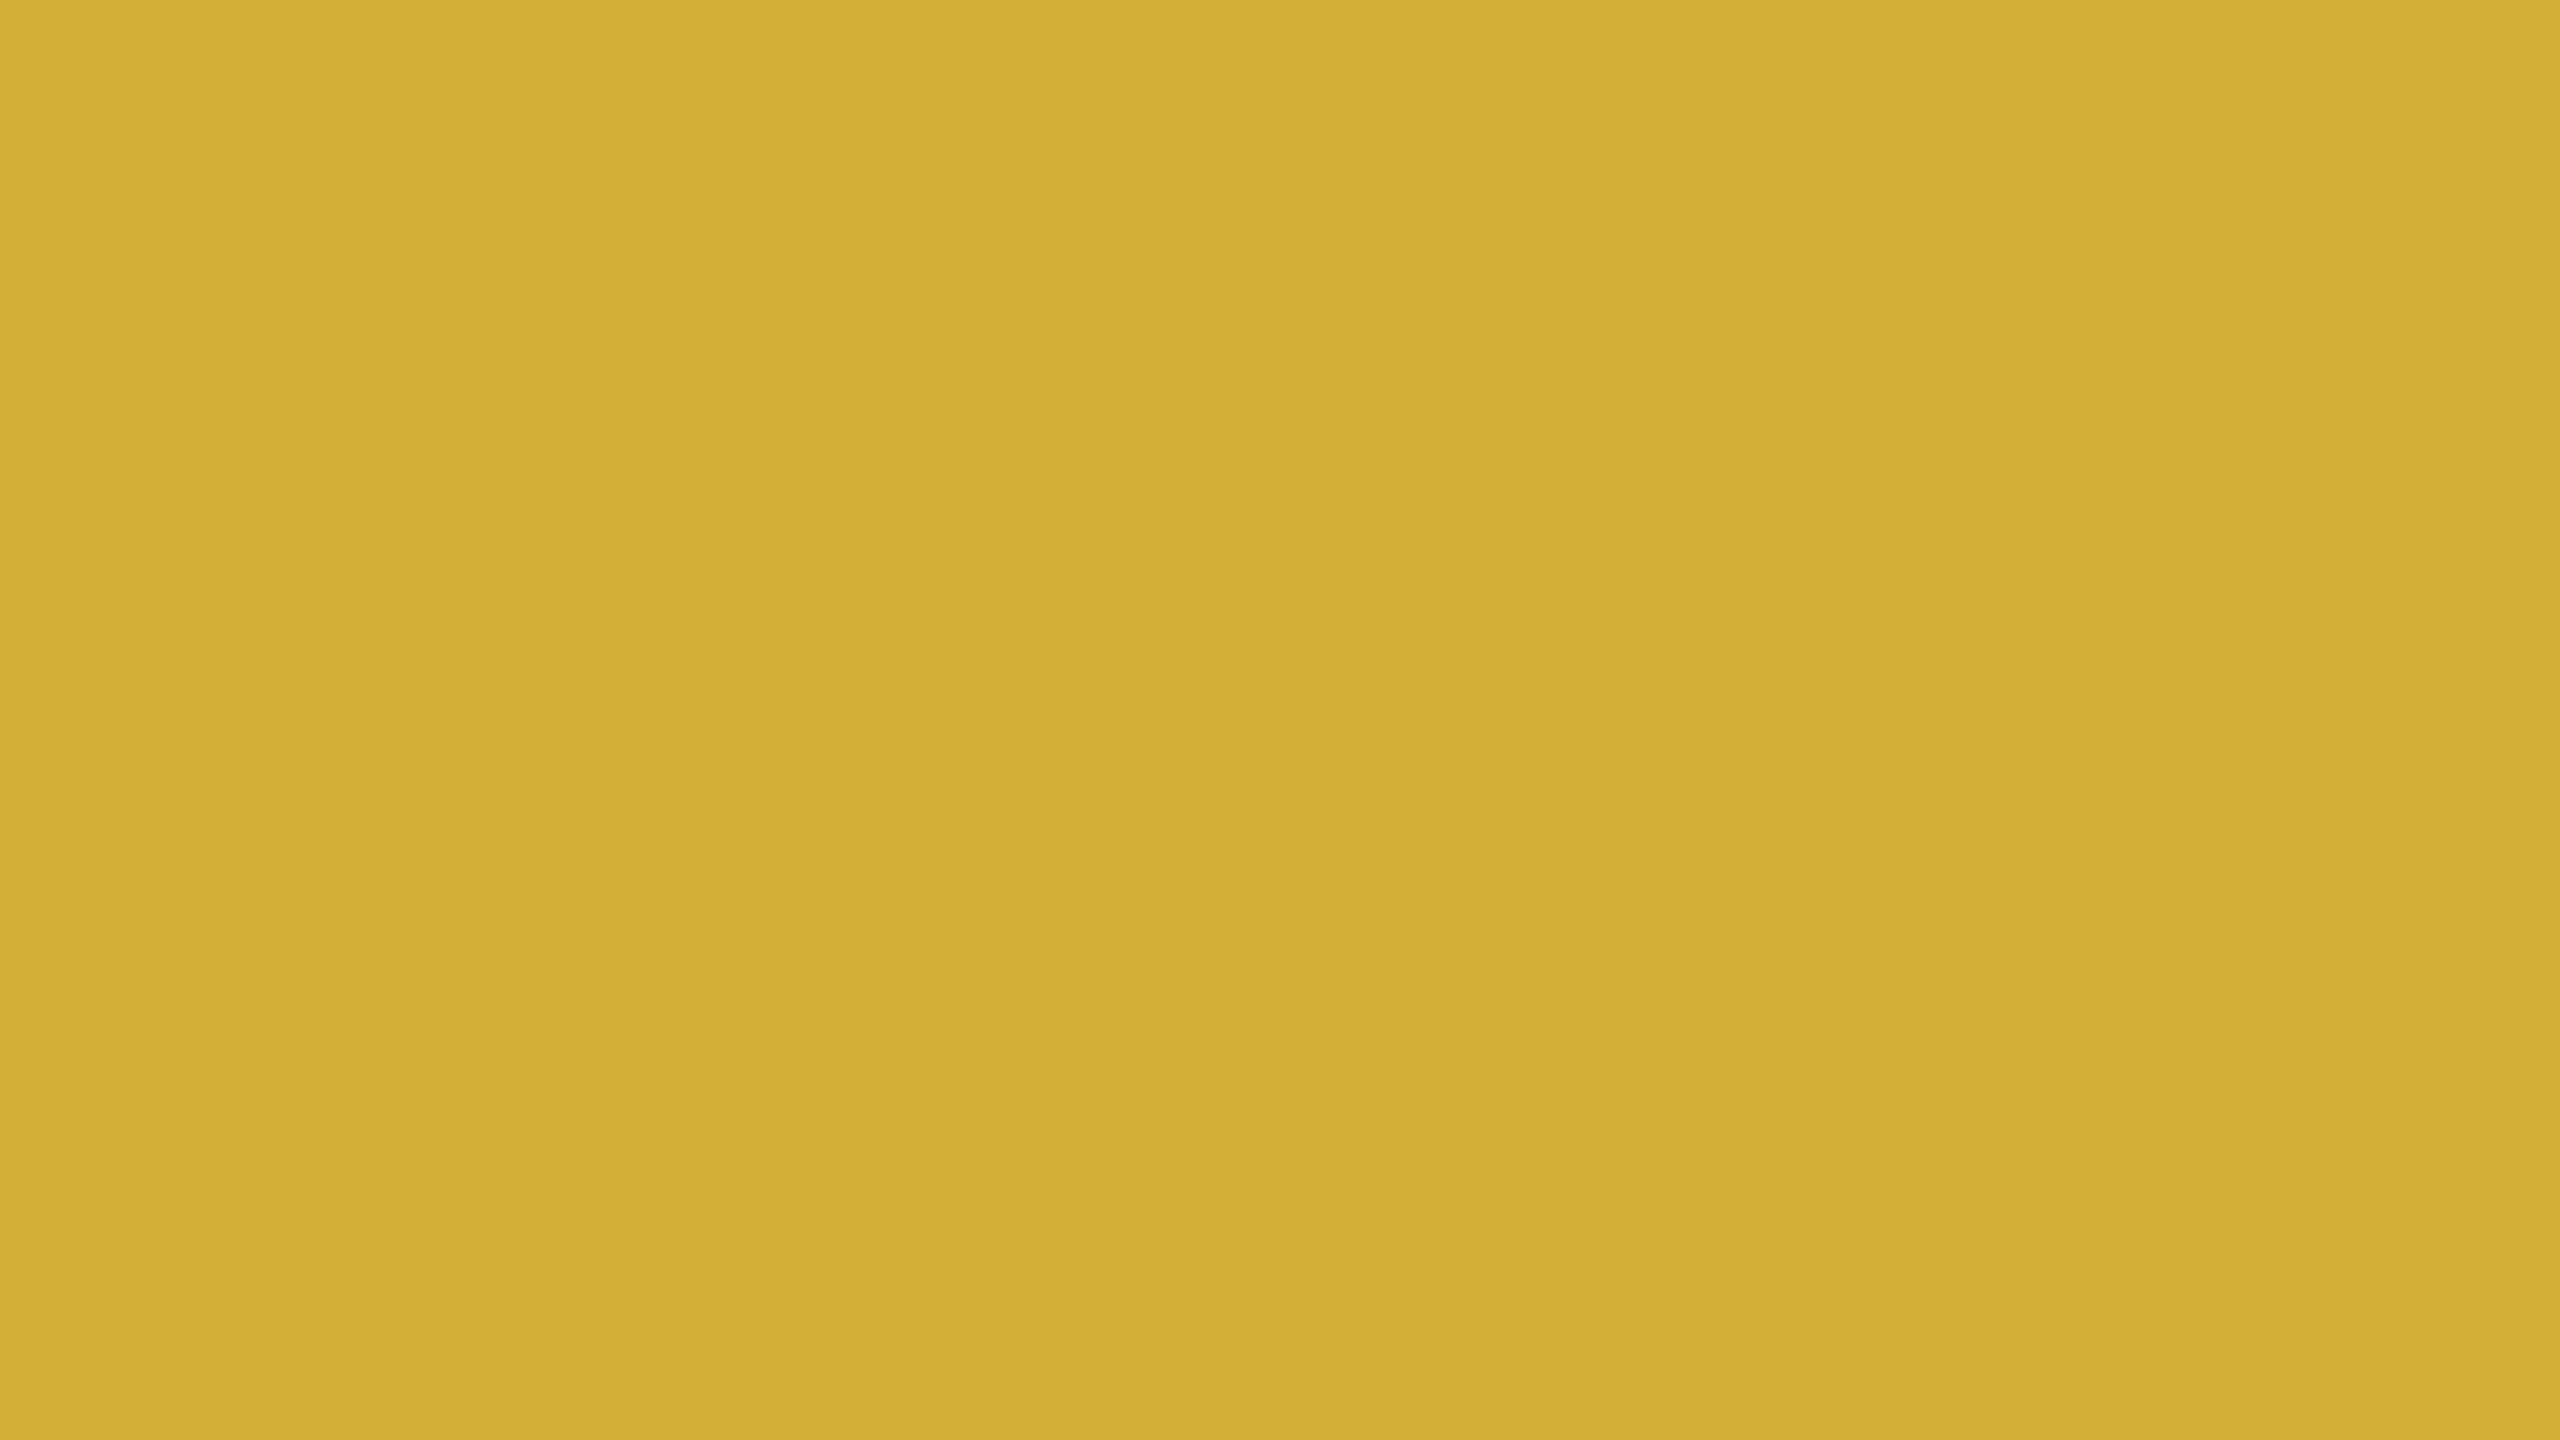 Gold Color Wallpapers 2560x1440